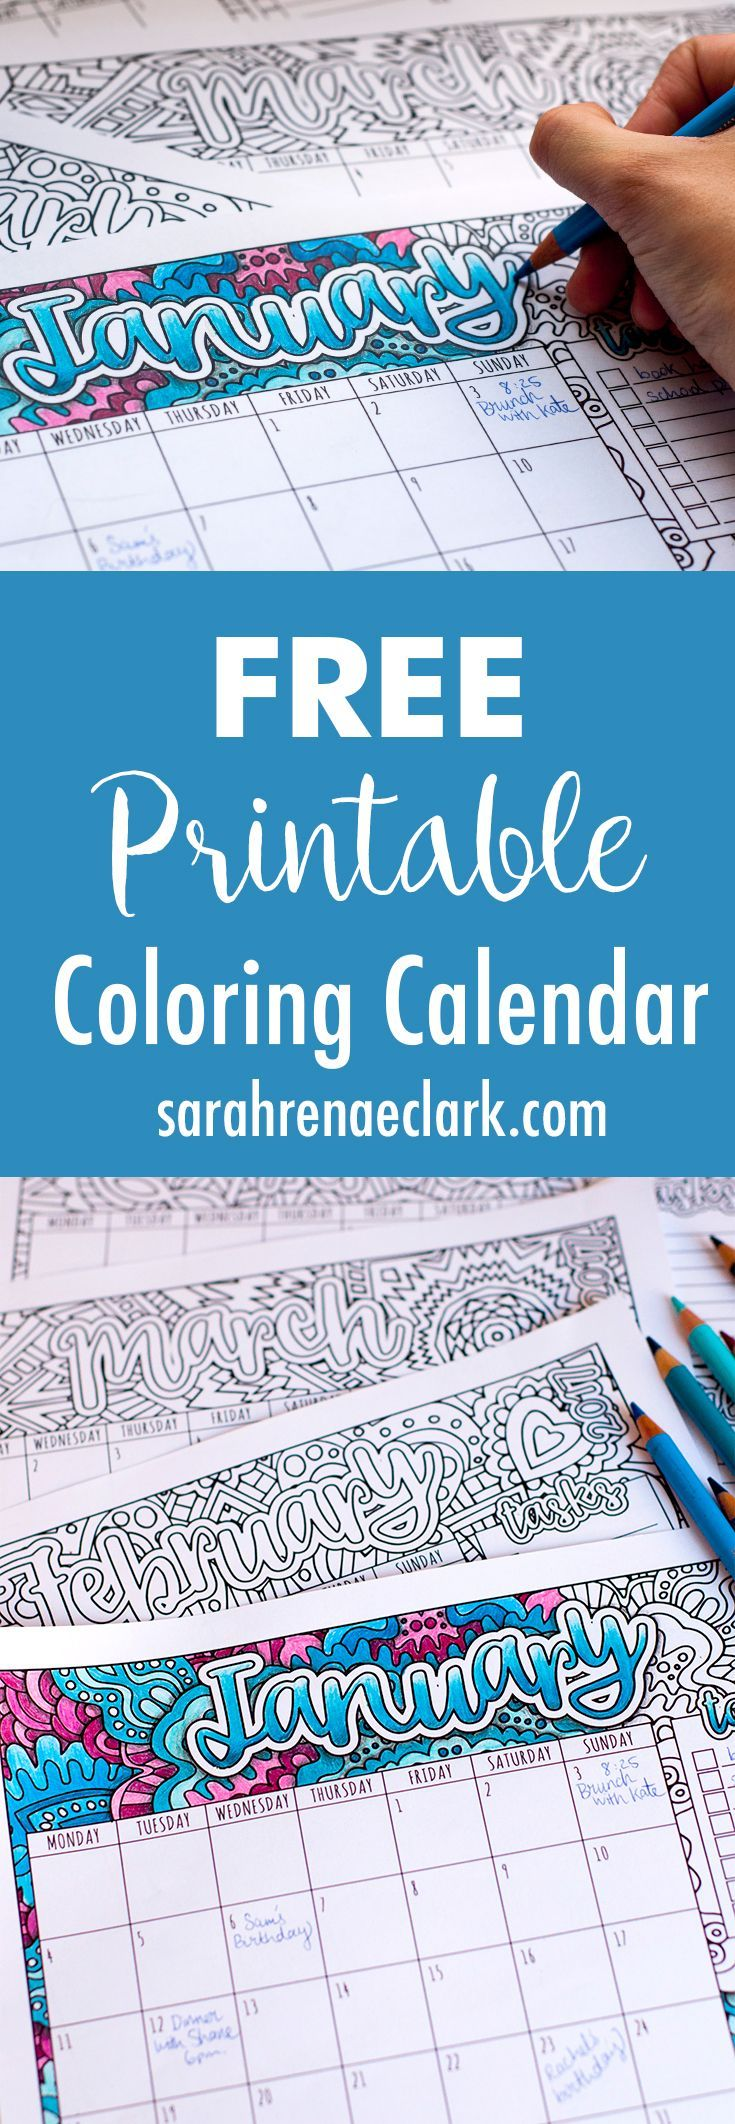 88 best All Things Printables images on Pinterest | Free printables ...